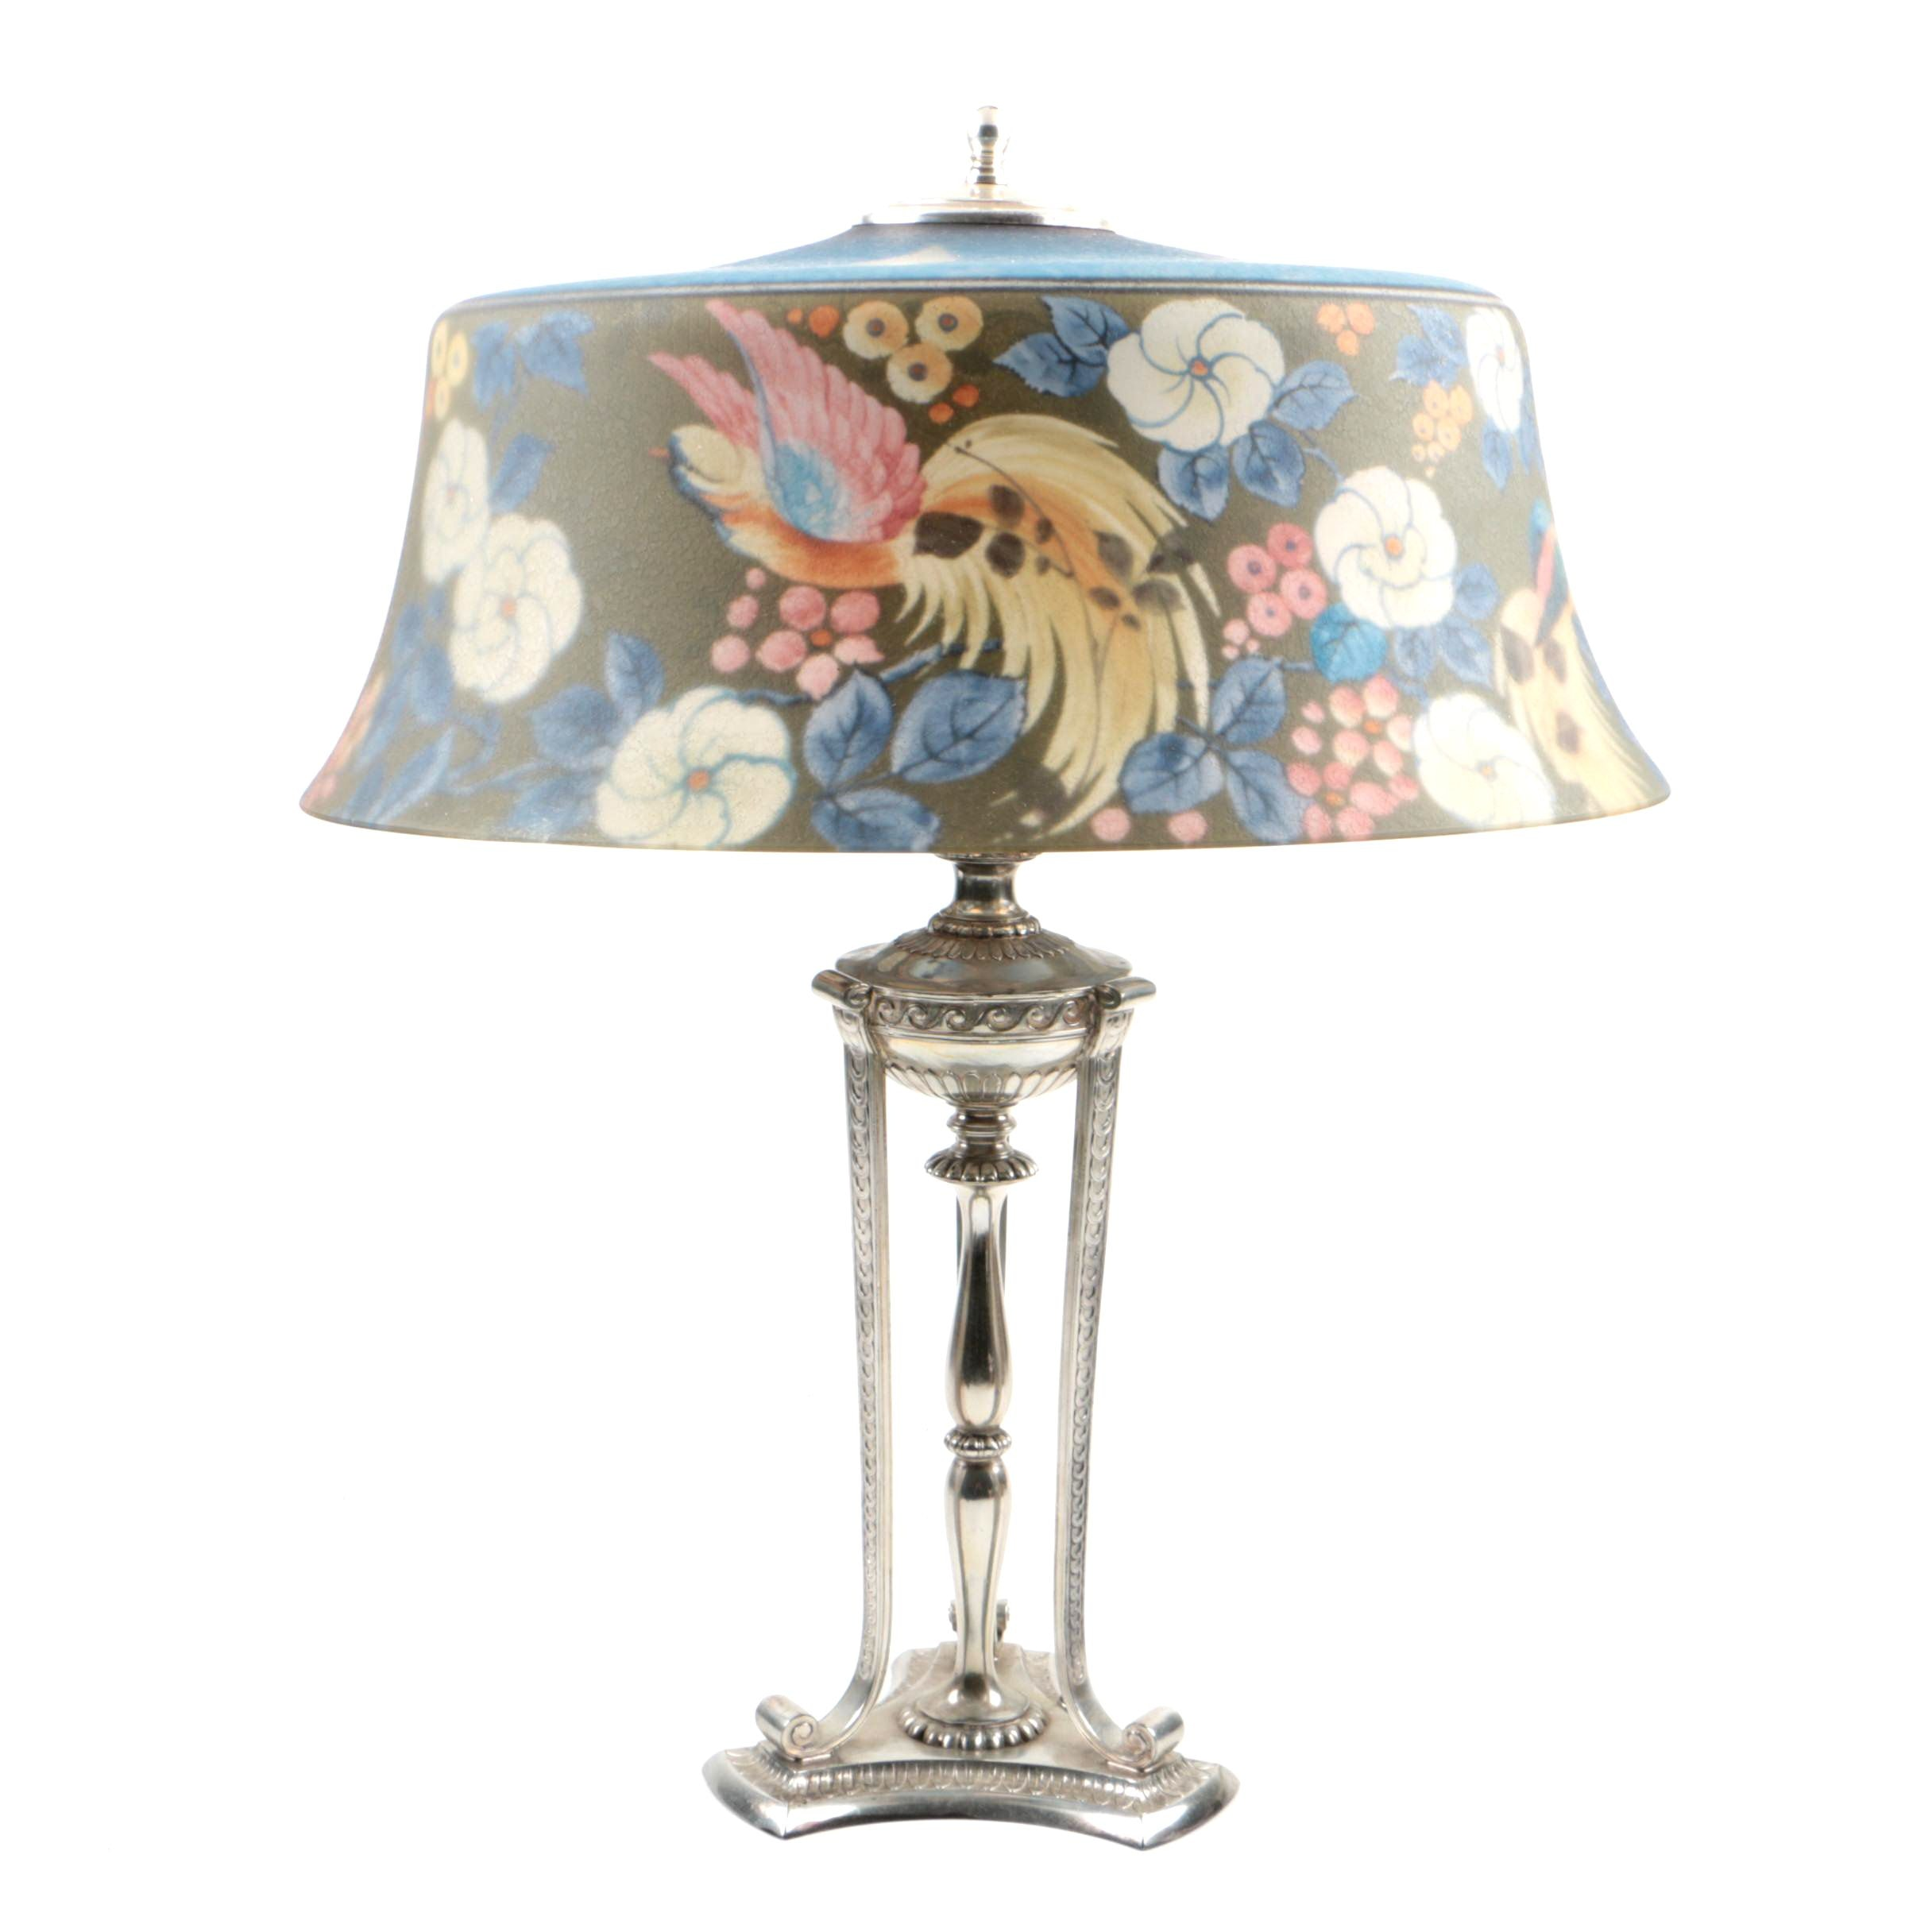 Pairpoint Table Lamp with Reverse-Painted Bird of Paradise Glass Shade